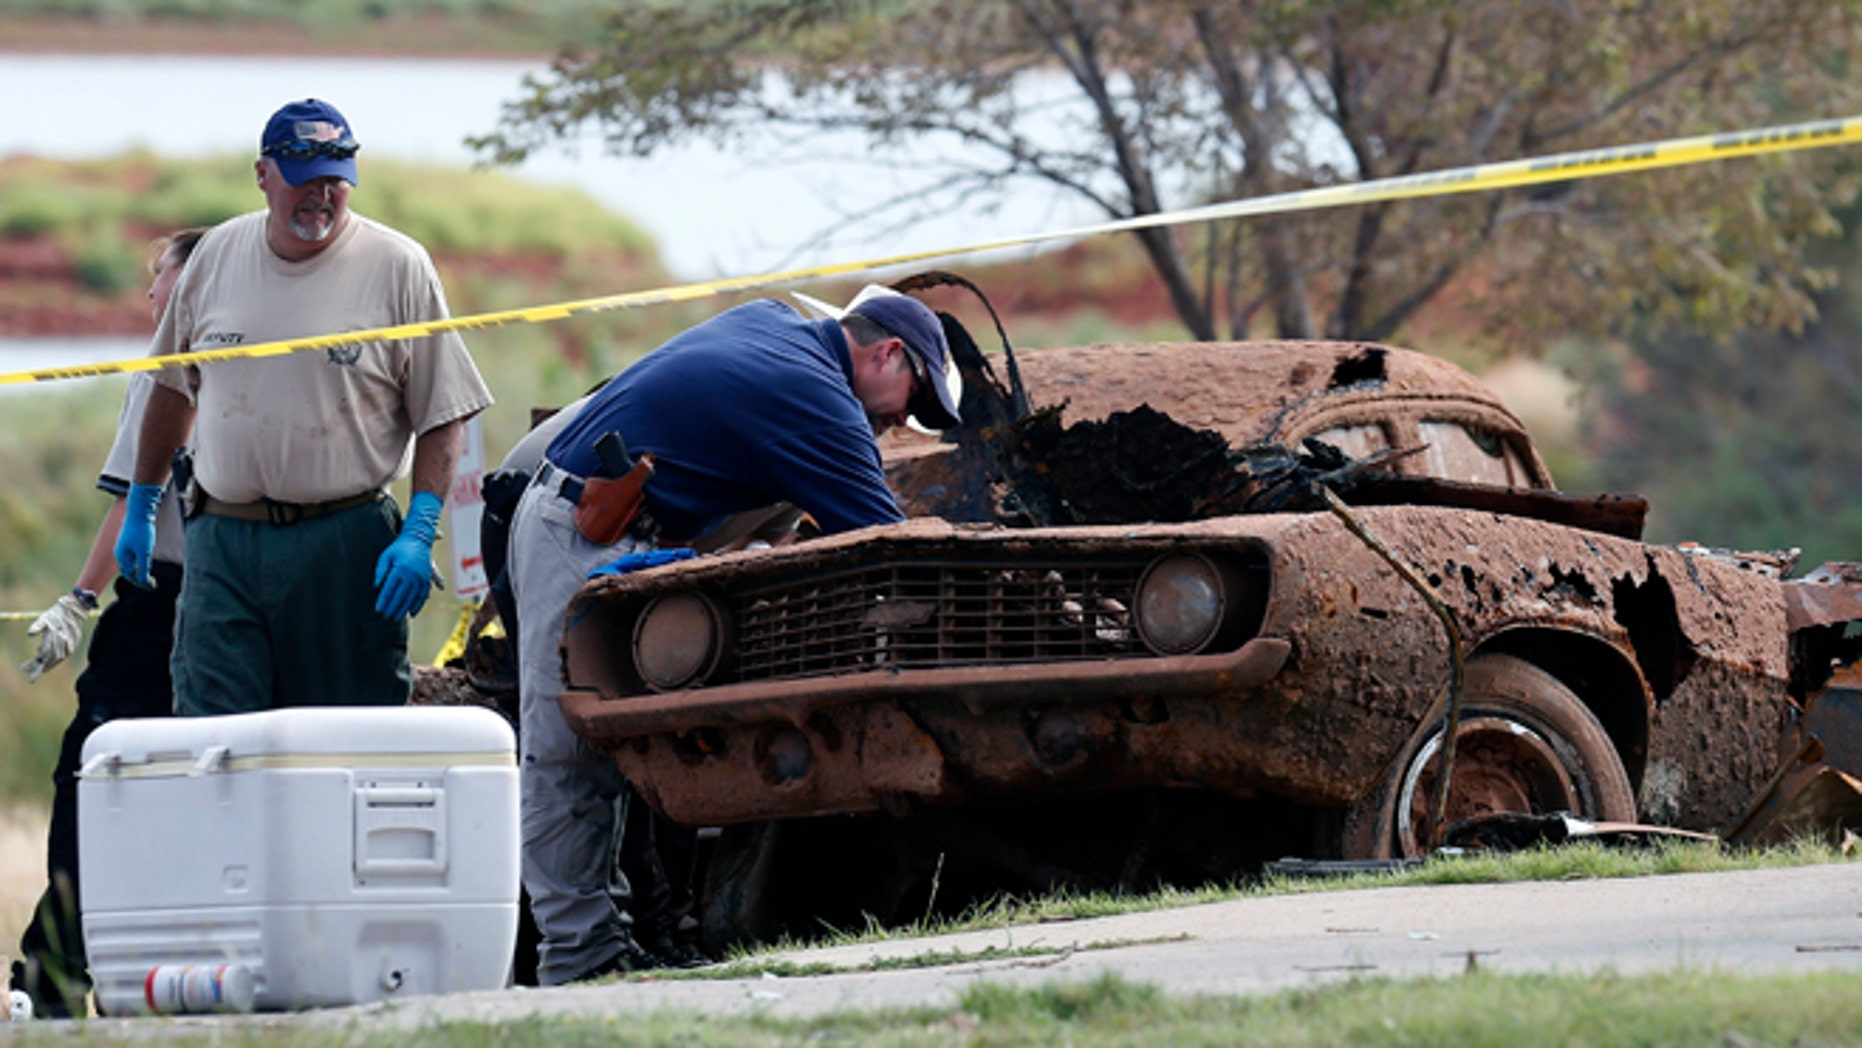 Law enforcement officials from multiple agencies examine the two cars pulled from Foss Lake, in Foss, Okla., Wednesday, Sept. 18, 2013. The Oklahoma State Medical Examinerâs Office says authorities have recovered skeletal remains of multiple bodies in the Oklahoma lake where the cars were recovered. (AP Photo/Sue Ogrocki)